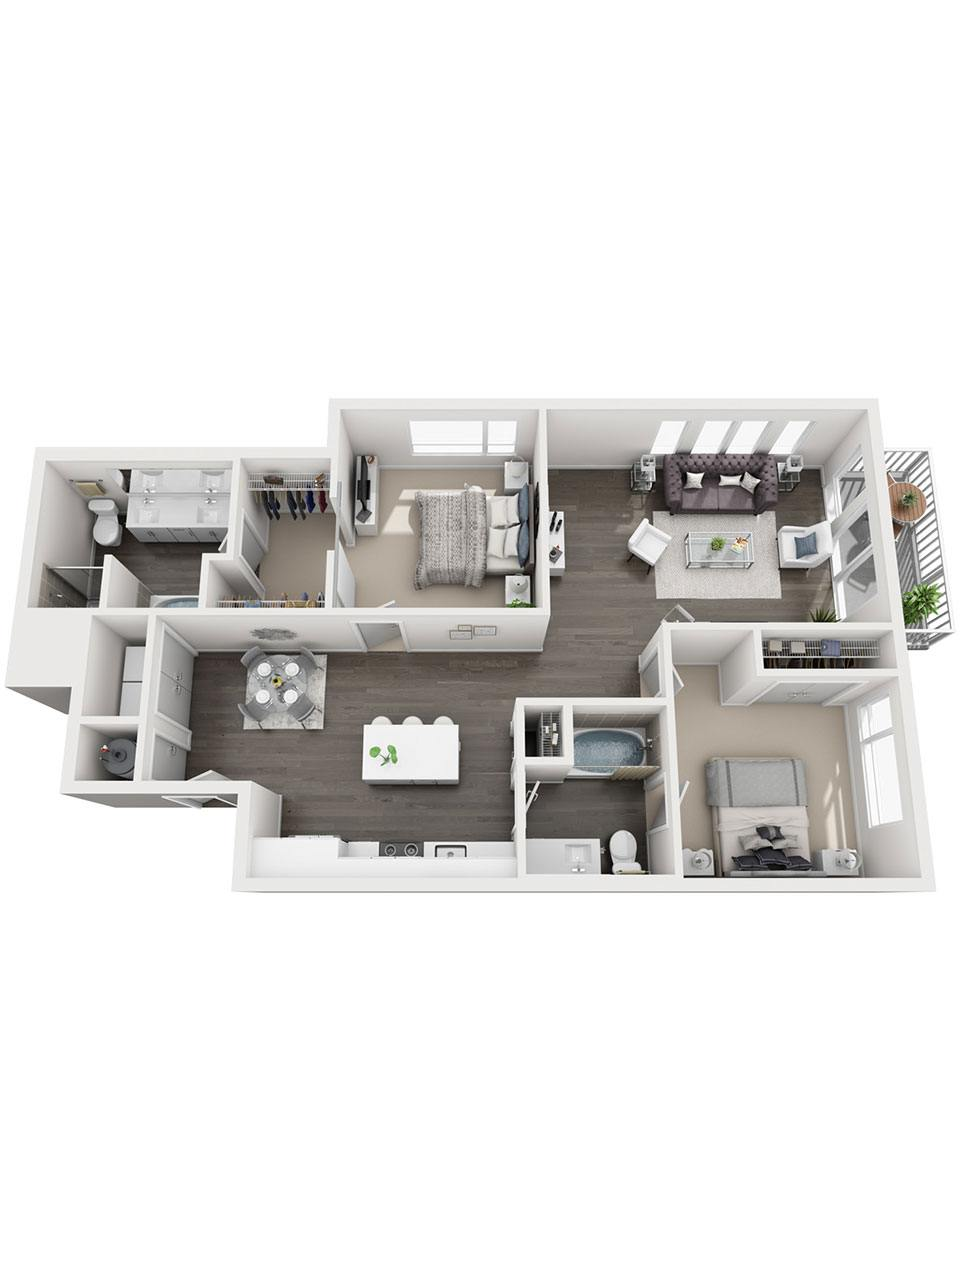 Plan 2 Bedroom – B5 | 2 Bath